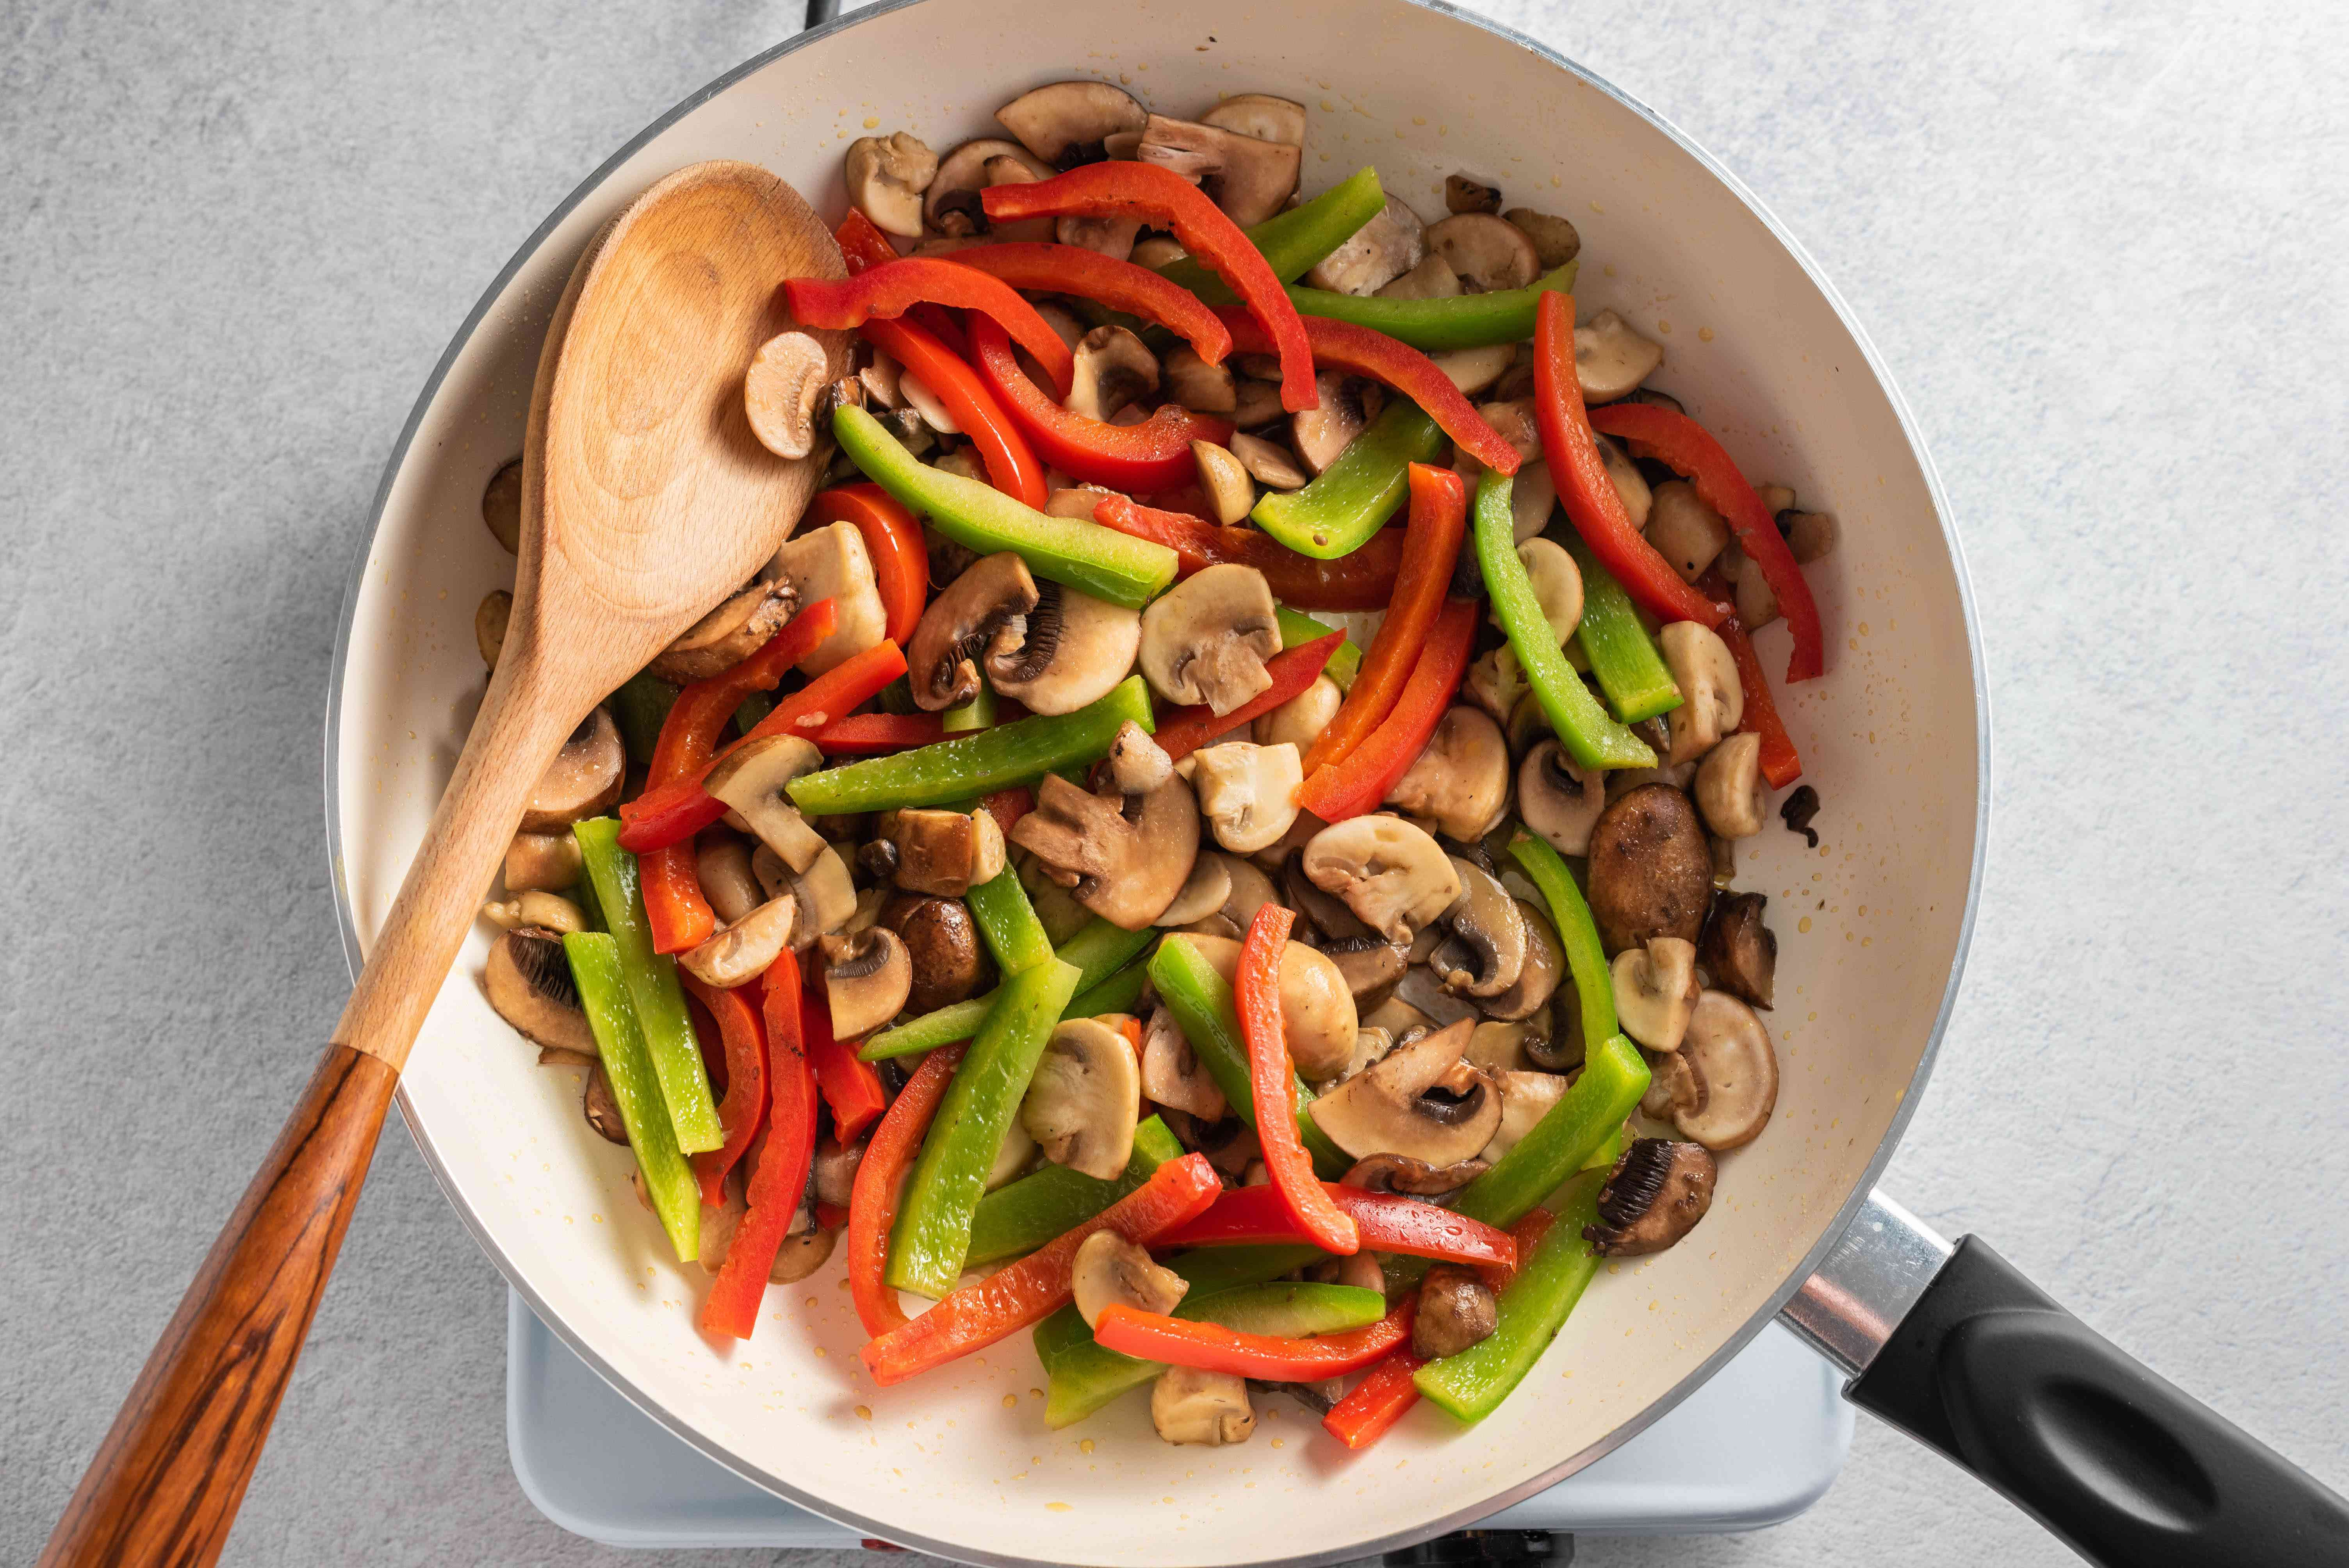 Peppers and mushrooms